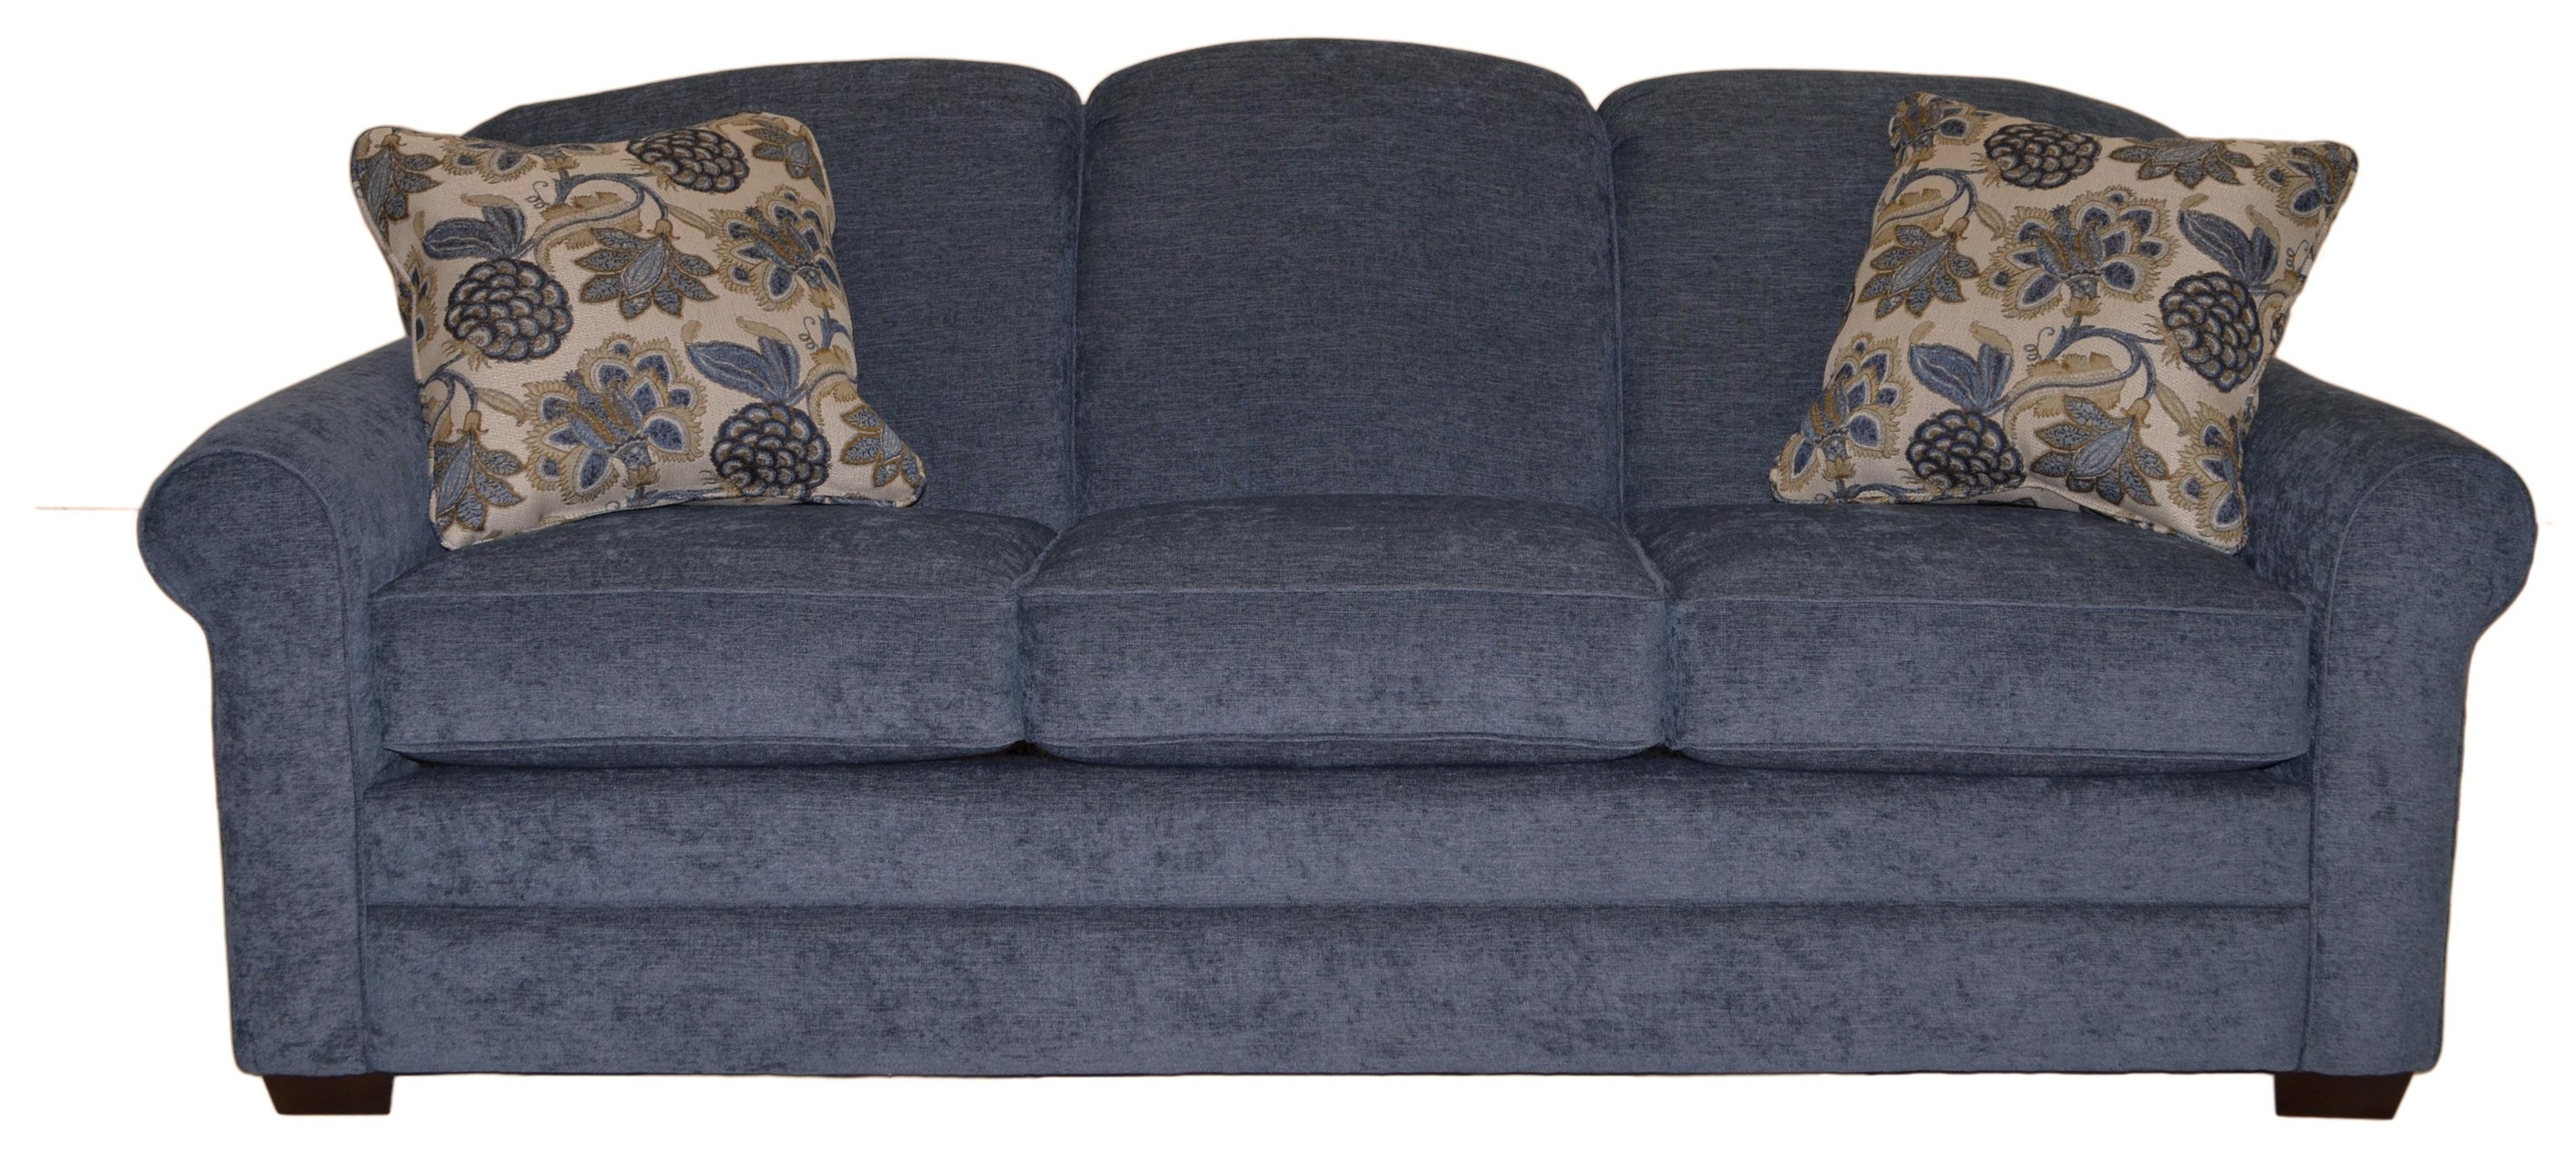 7185 Sofa by Hickory Craft at Godby Home Furnishings